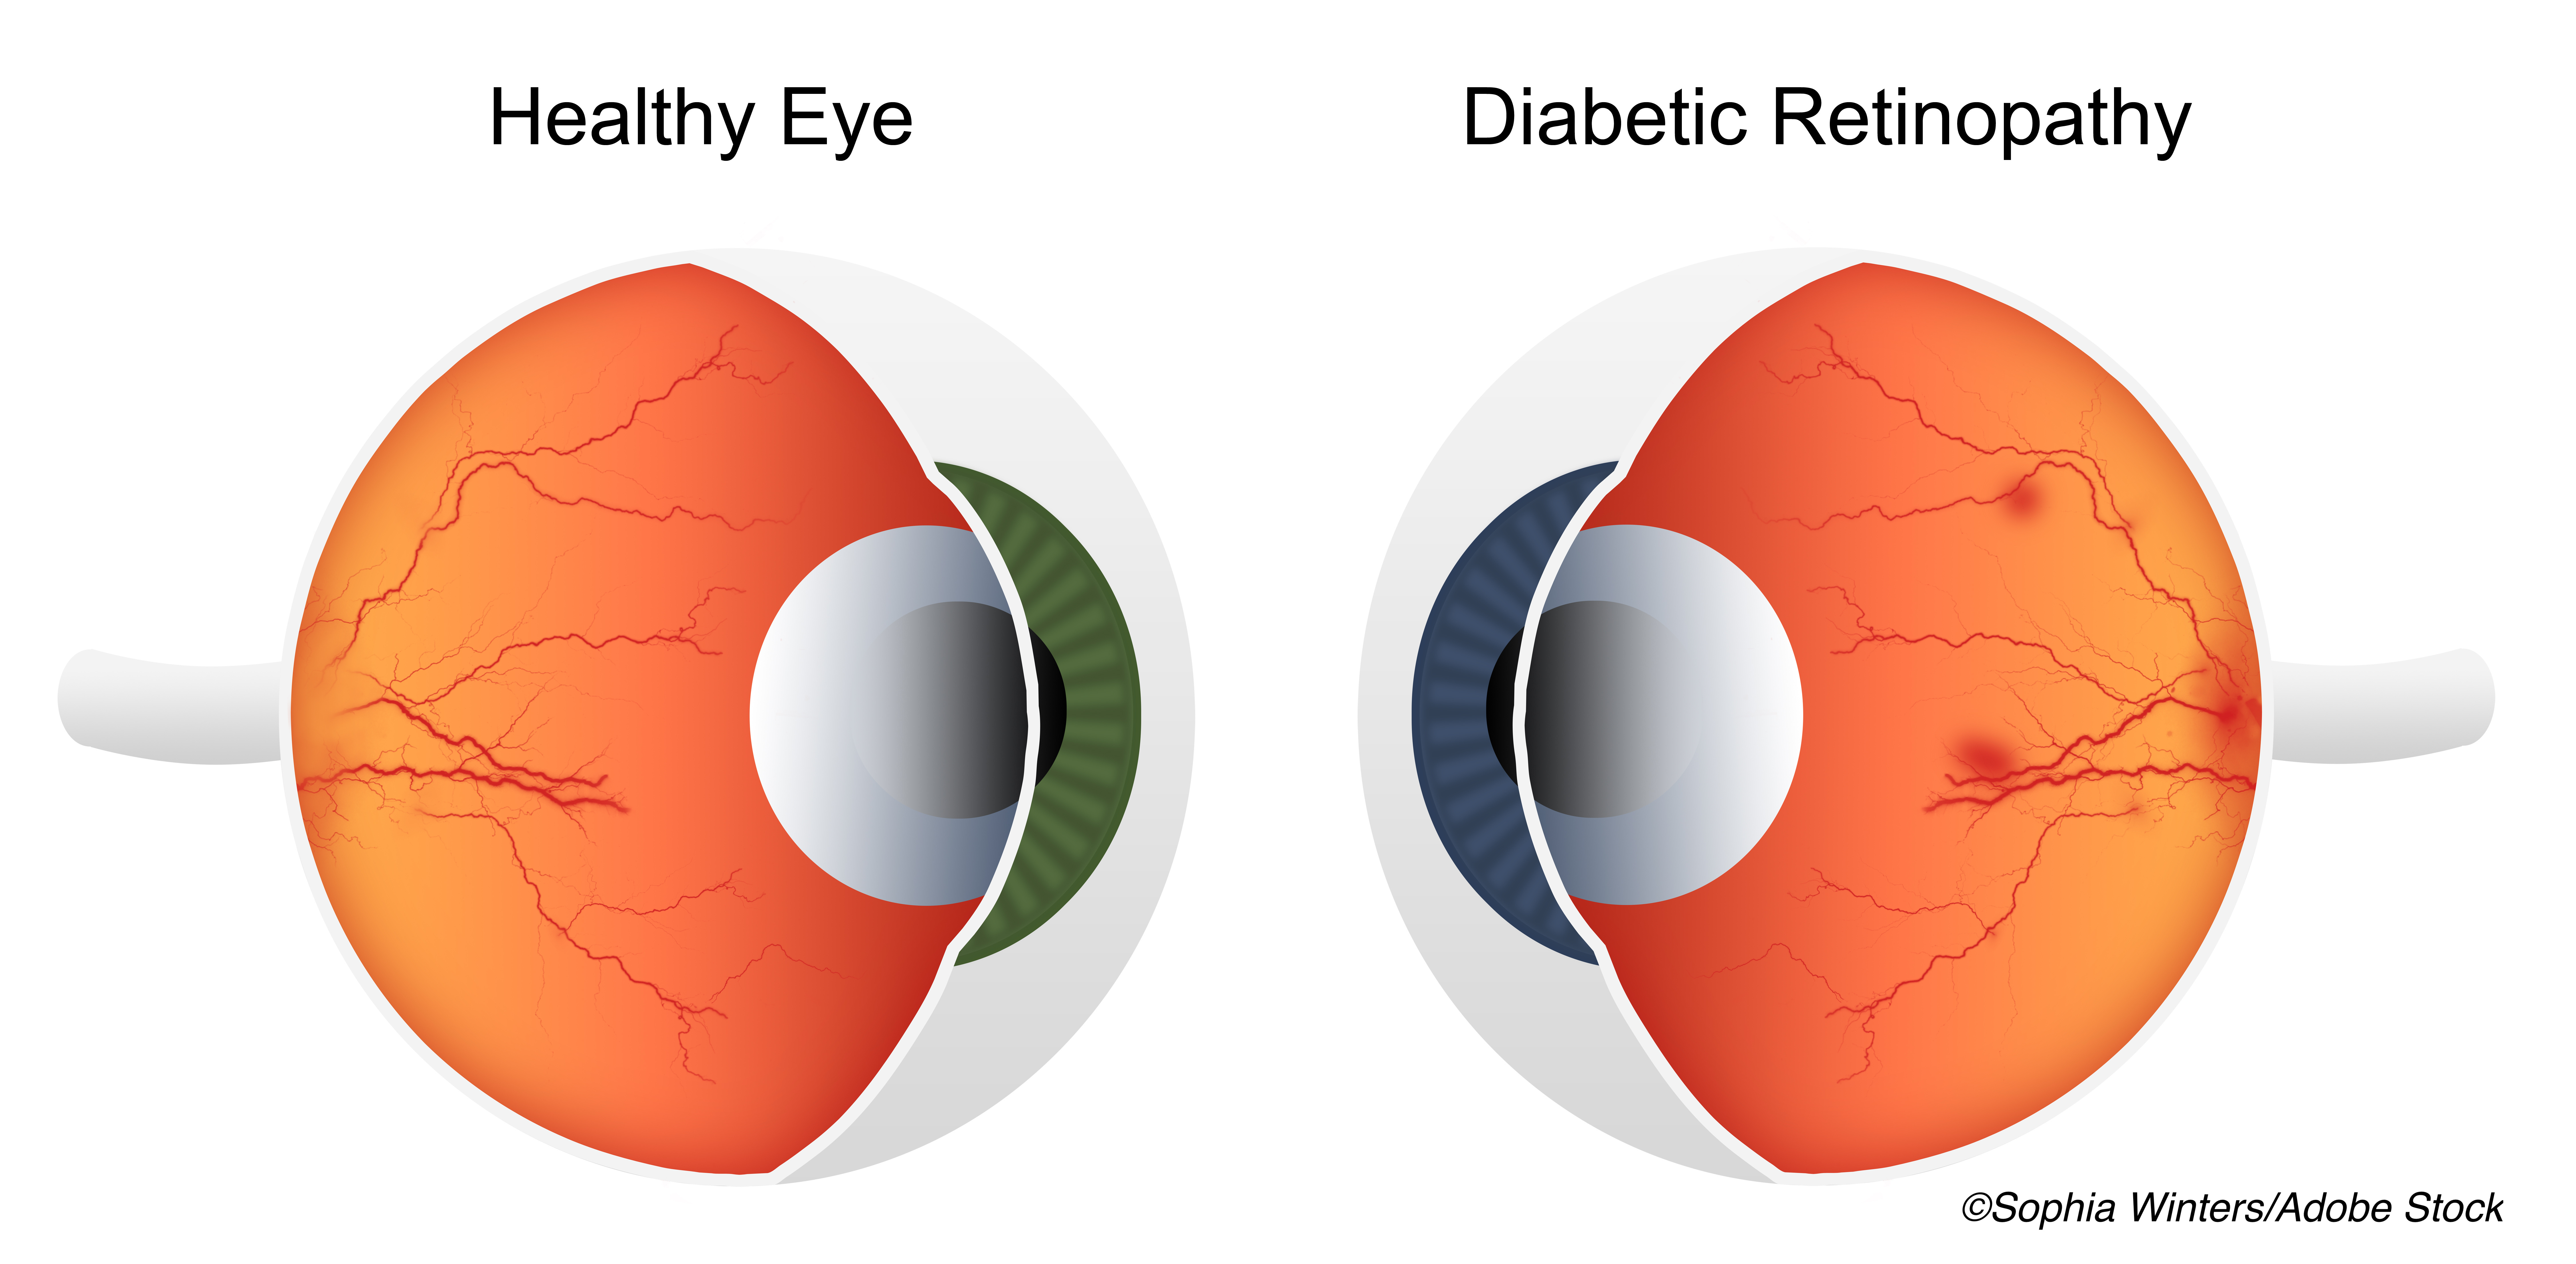 Prophylactic Aflibercept Significantly Reduced DME, Proliferative Diabetic Retinopathy